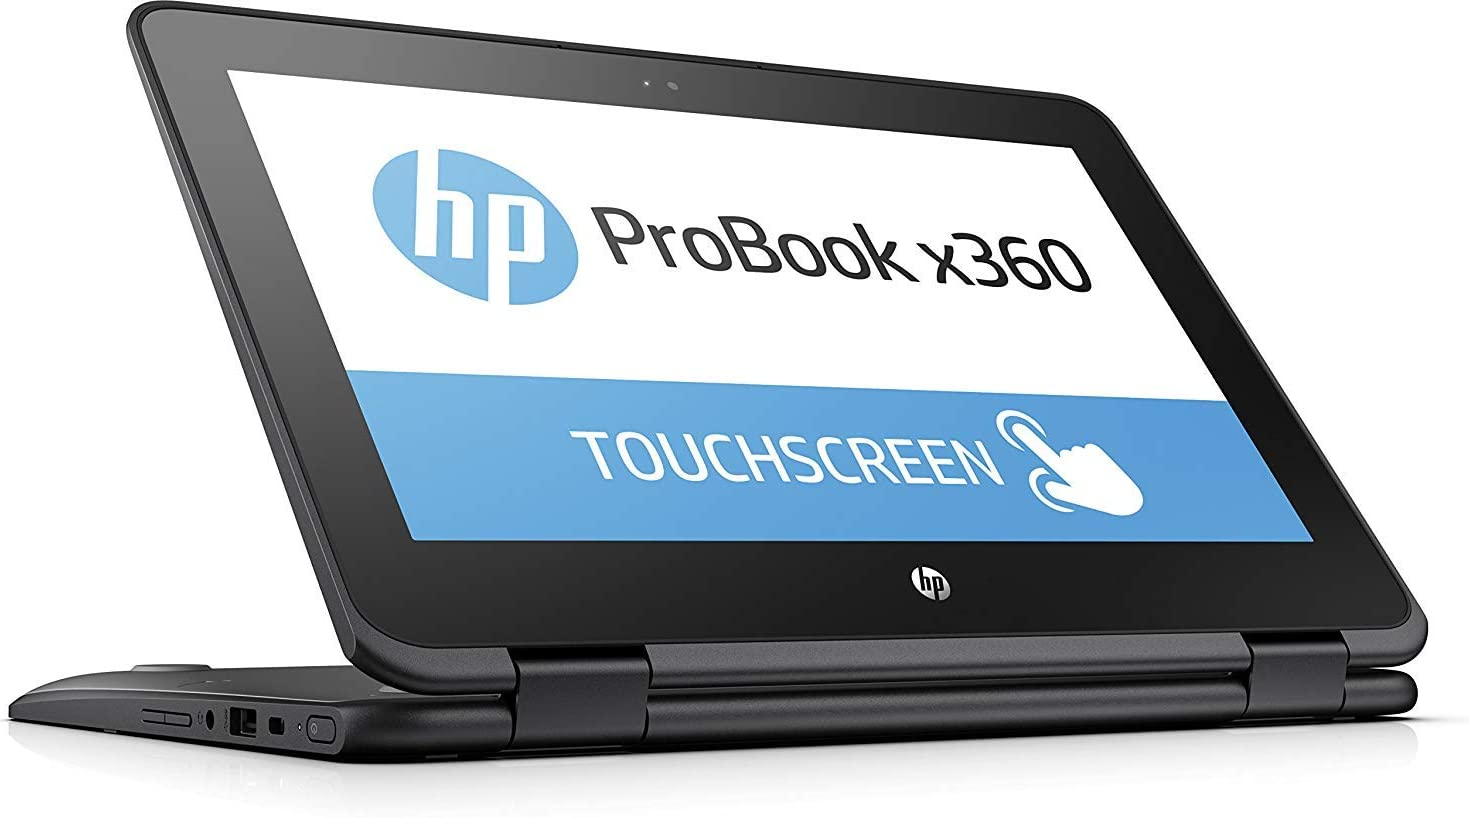 """HP Probook x360 11-G1 EE 11.6"""" 2-in-1 HD Touch-Screen Business Education Laptop with Active Pen, Intel N3450 Quad-Core, 64GB eMMC, 4GB RAM, Type-C, HDMI, Bluetooth, Windows 10 S"""